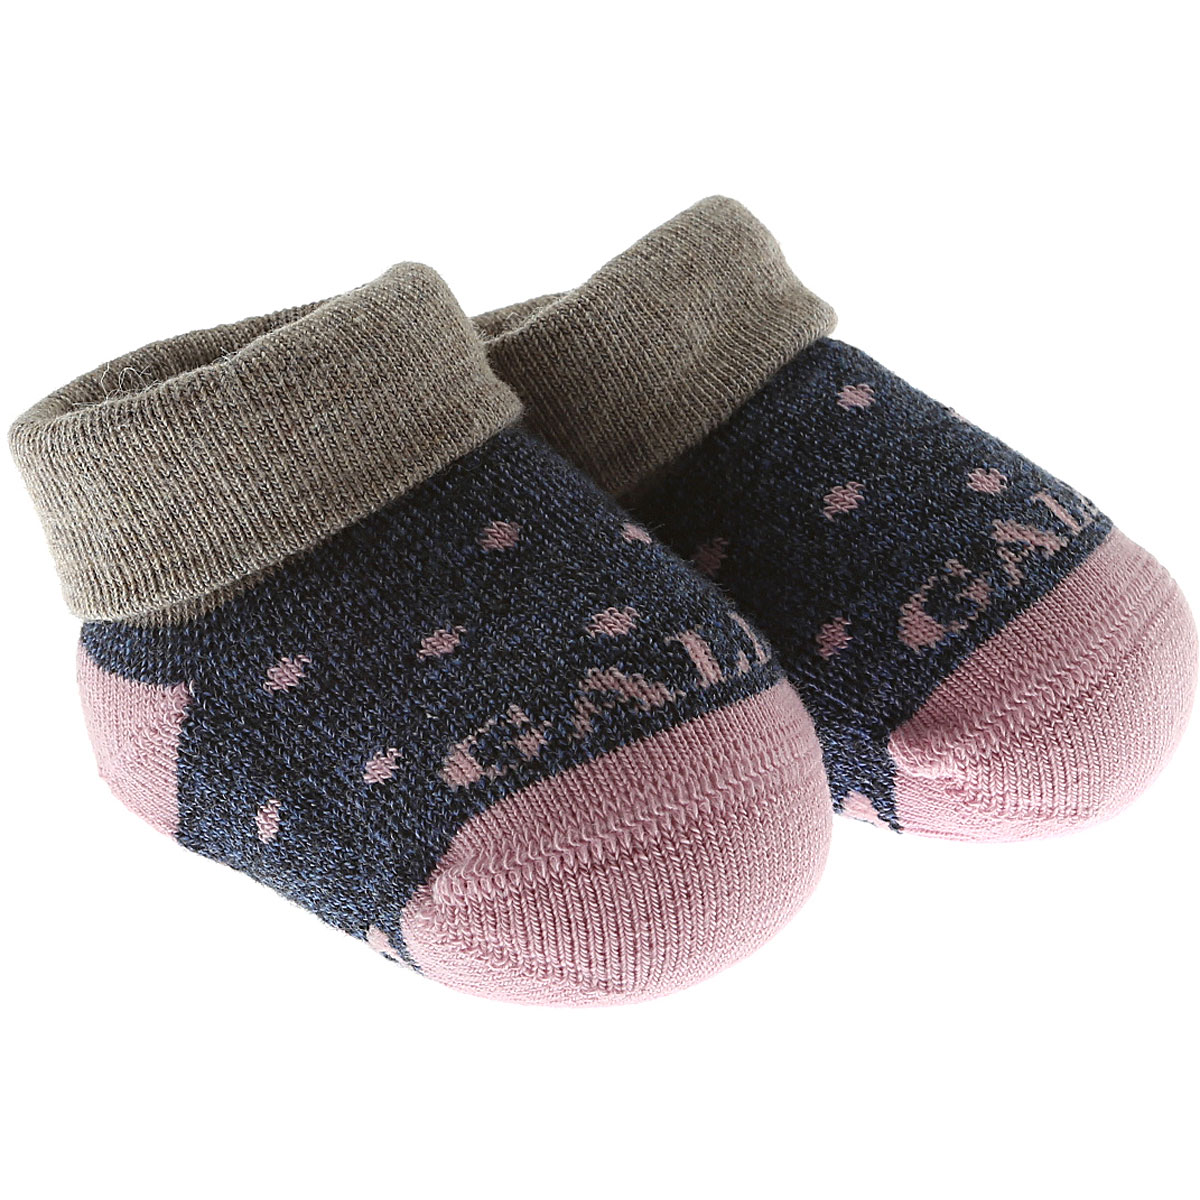 Gallo Baby Shoes for Girls On Sale in Outlet, Blue Denim, Cotton, 2017